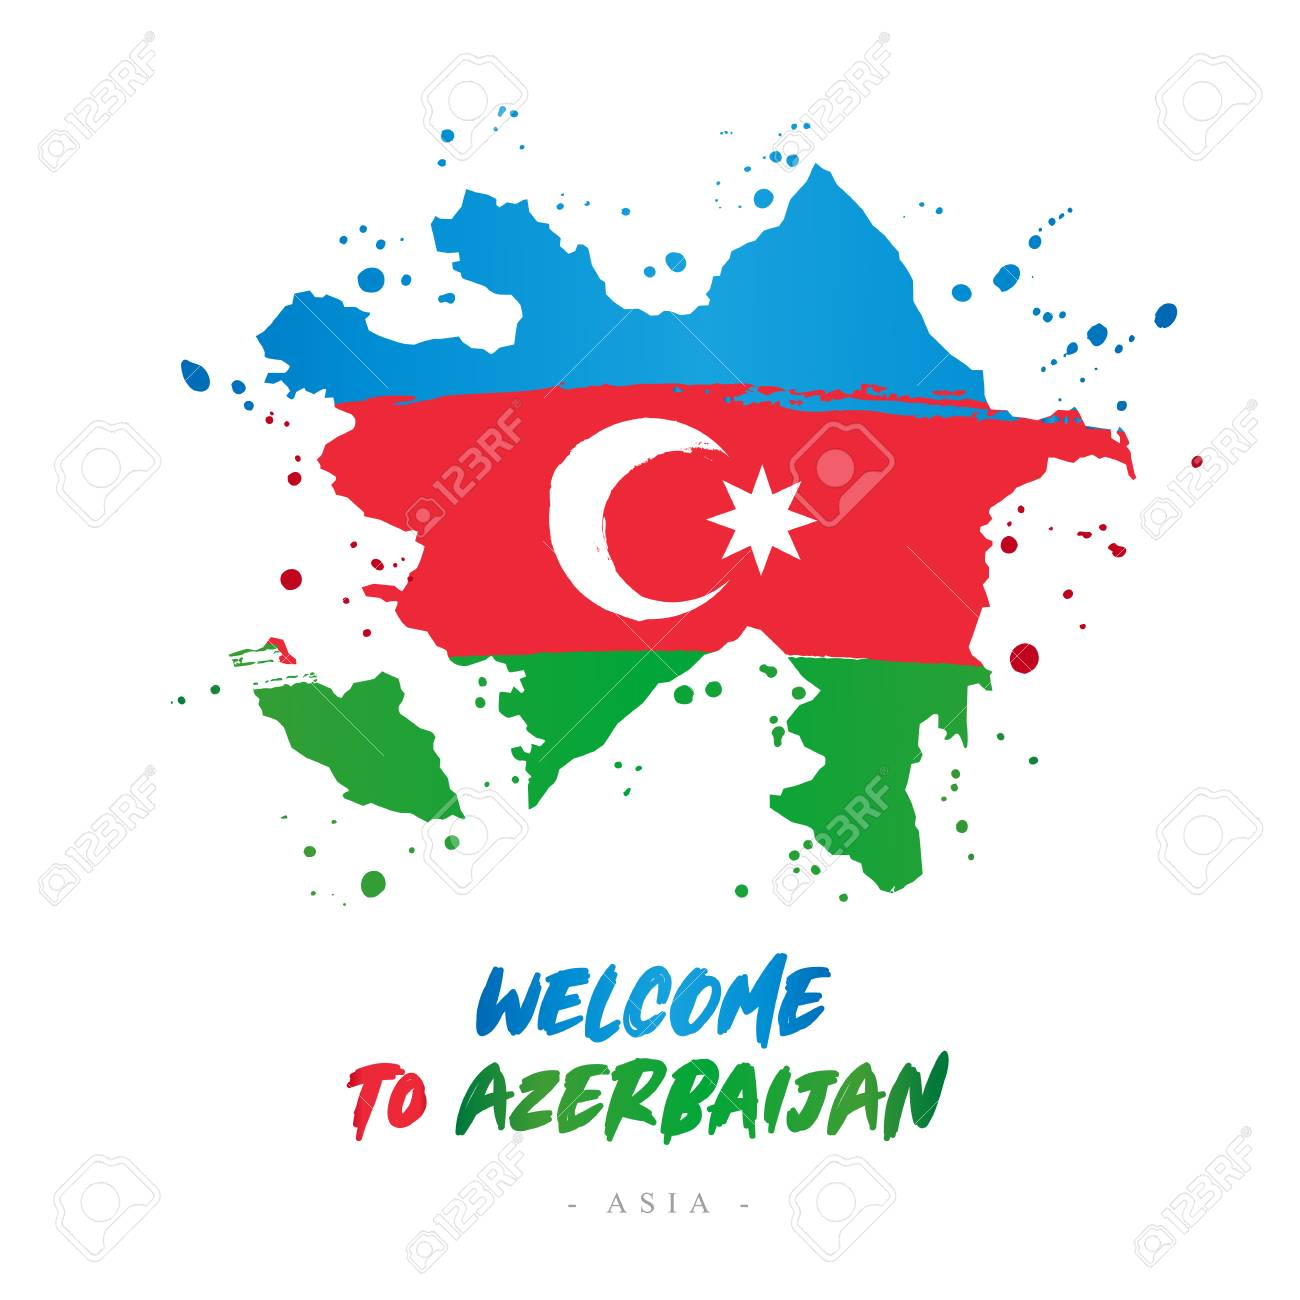 Welcome To Azerbaijan Asia Flag And Map Of The Country Of Azerbaijan Royalty Free Cliparts Vectors And Stock Illustration Image 104429063